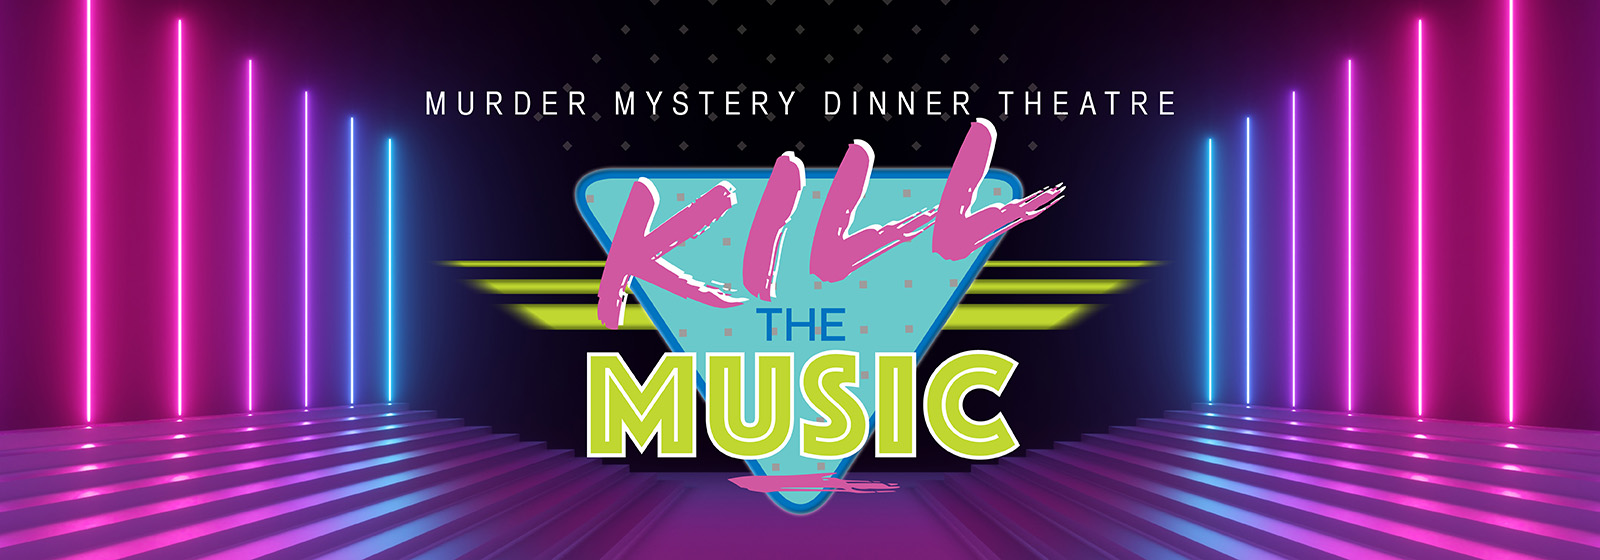 Kill the Music Murder Mystery Dinner Theatre